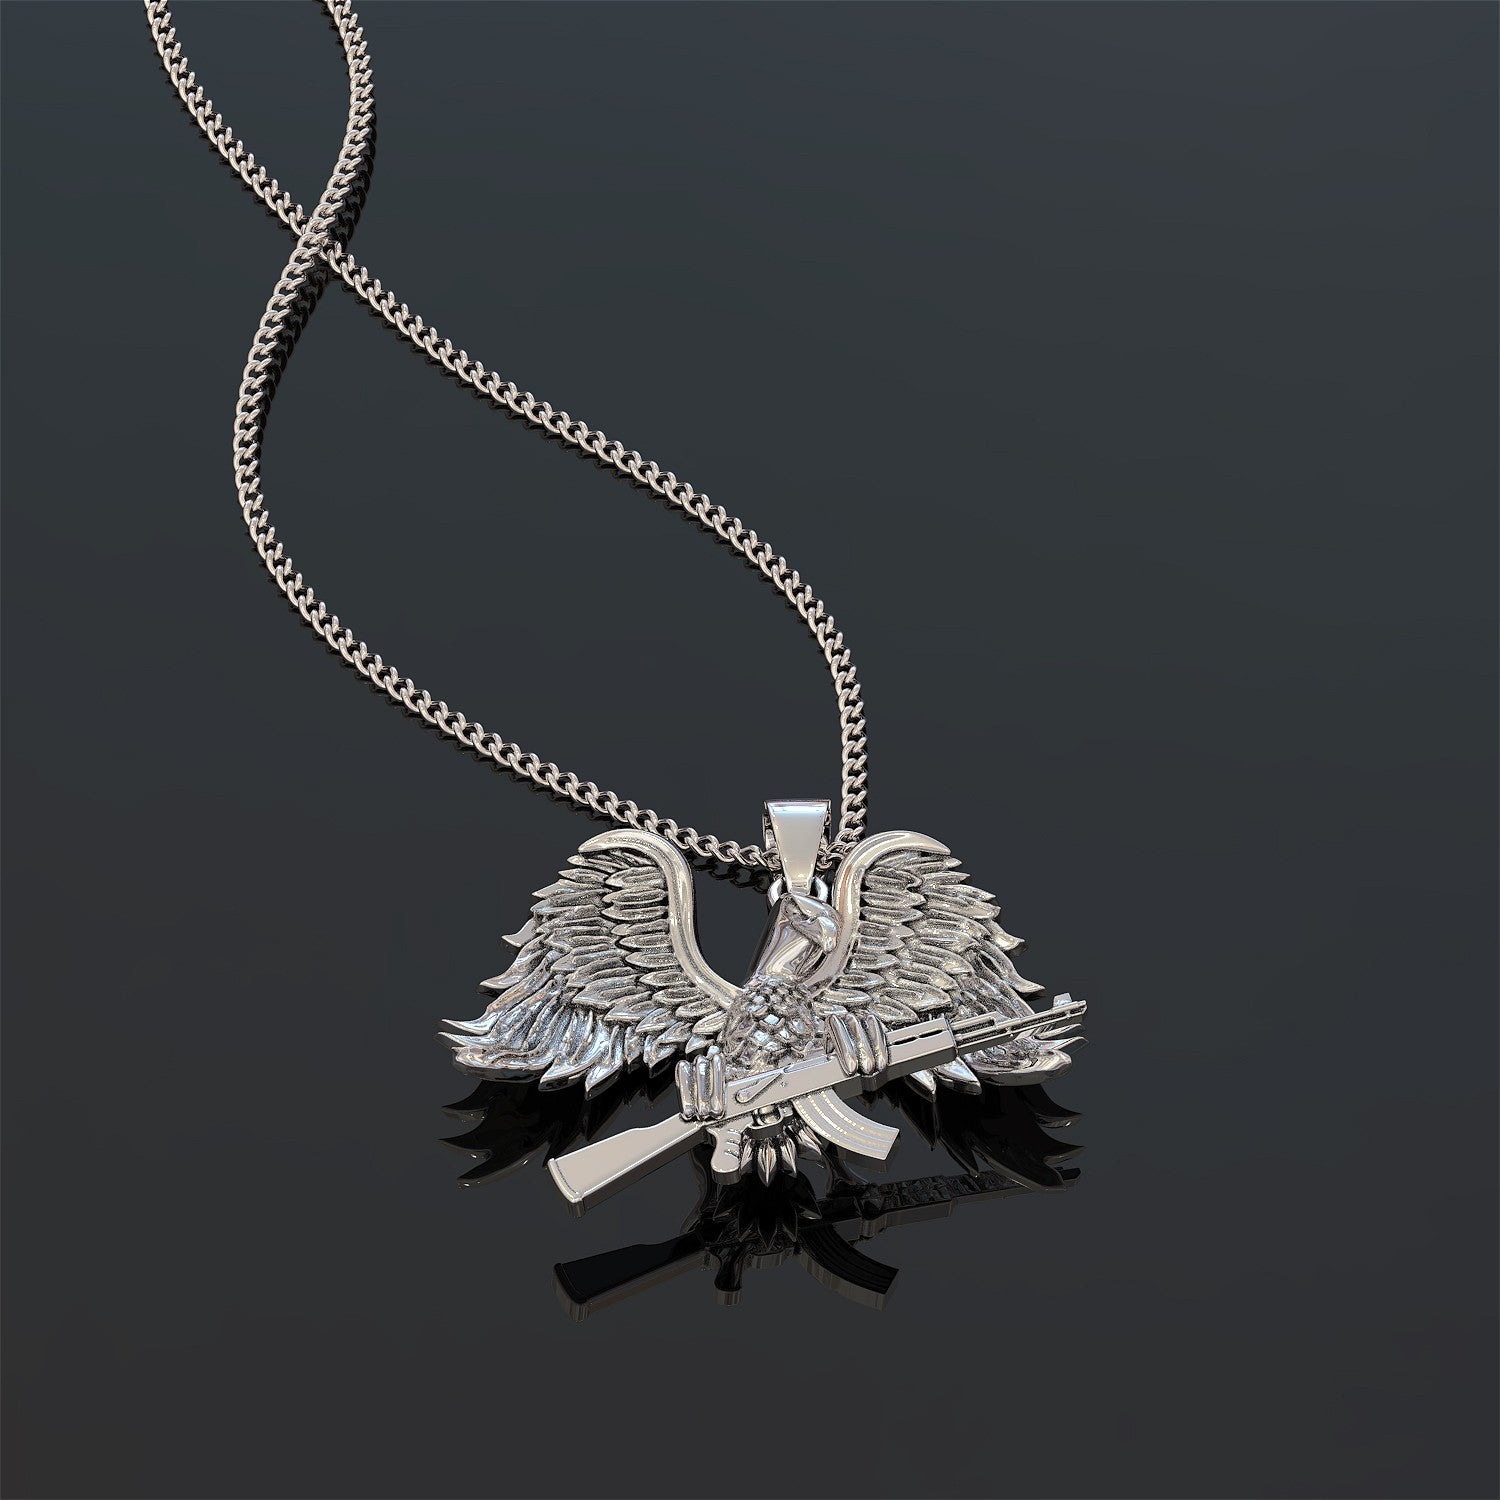 American Freedom Fighter Necklace - LIMITED EDITION